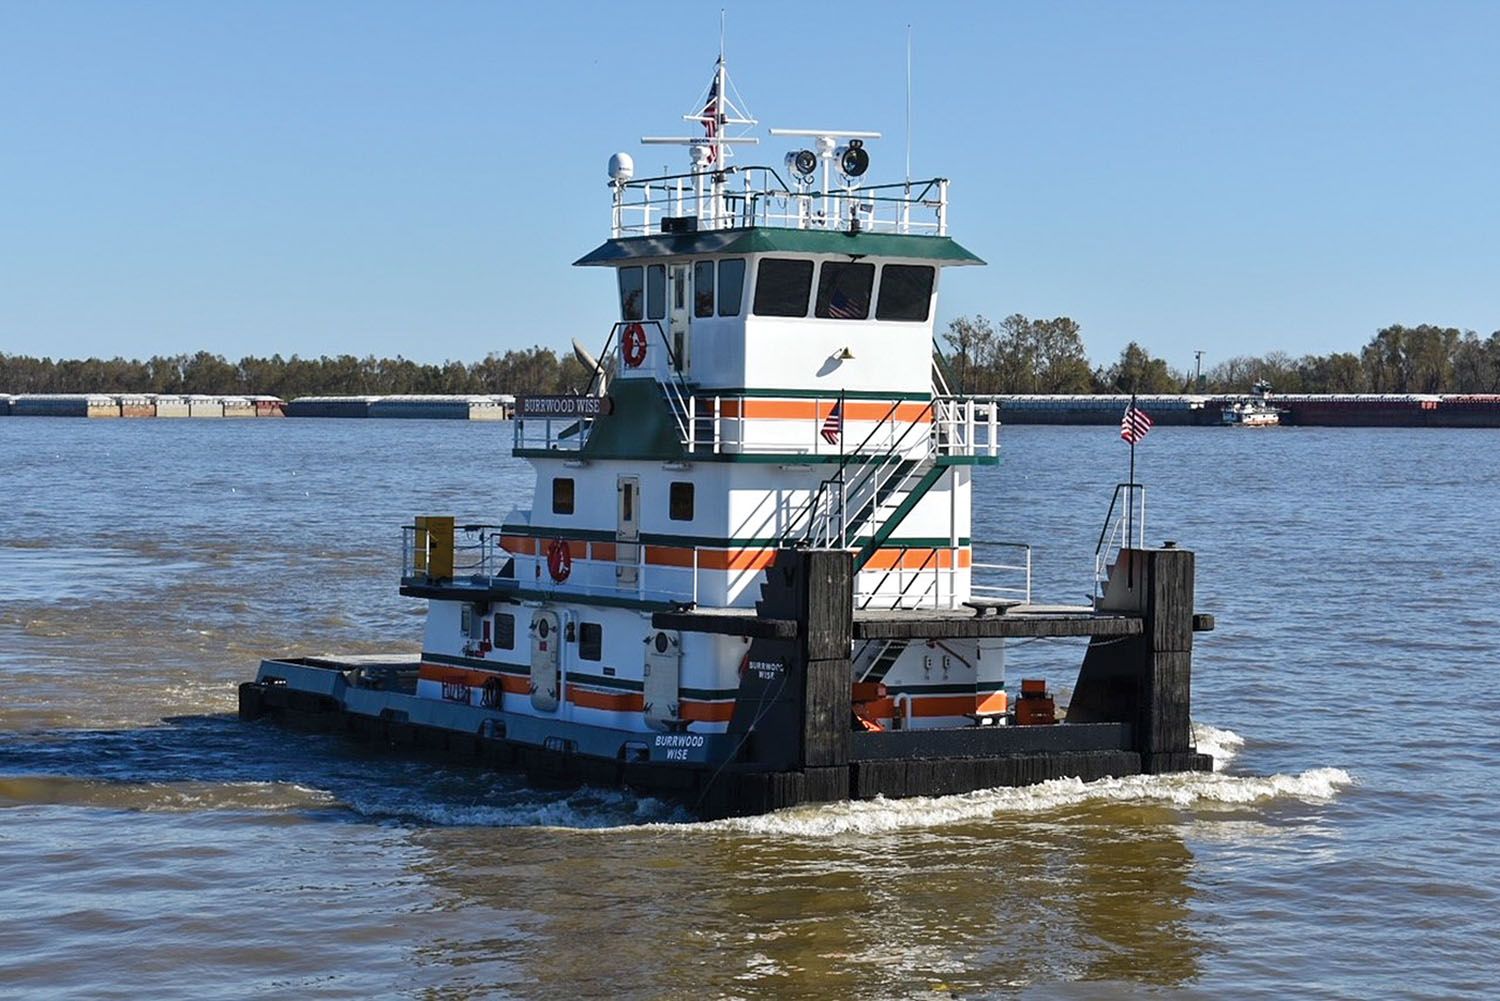 The mv. Burrwood Wise draws its name from the town of Burrwood, La., hometown of Dan Wise, Gnots Reserve Inc.'s president and owner.